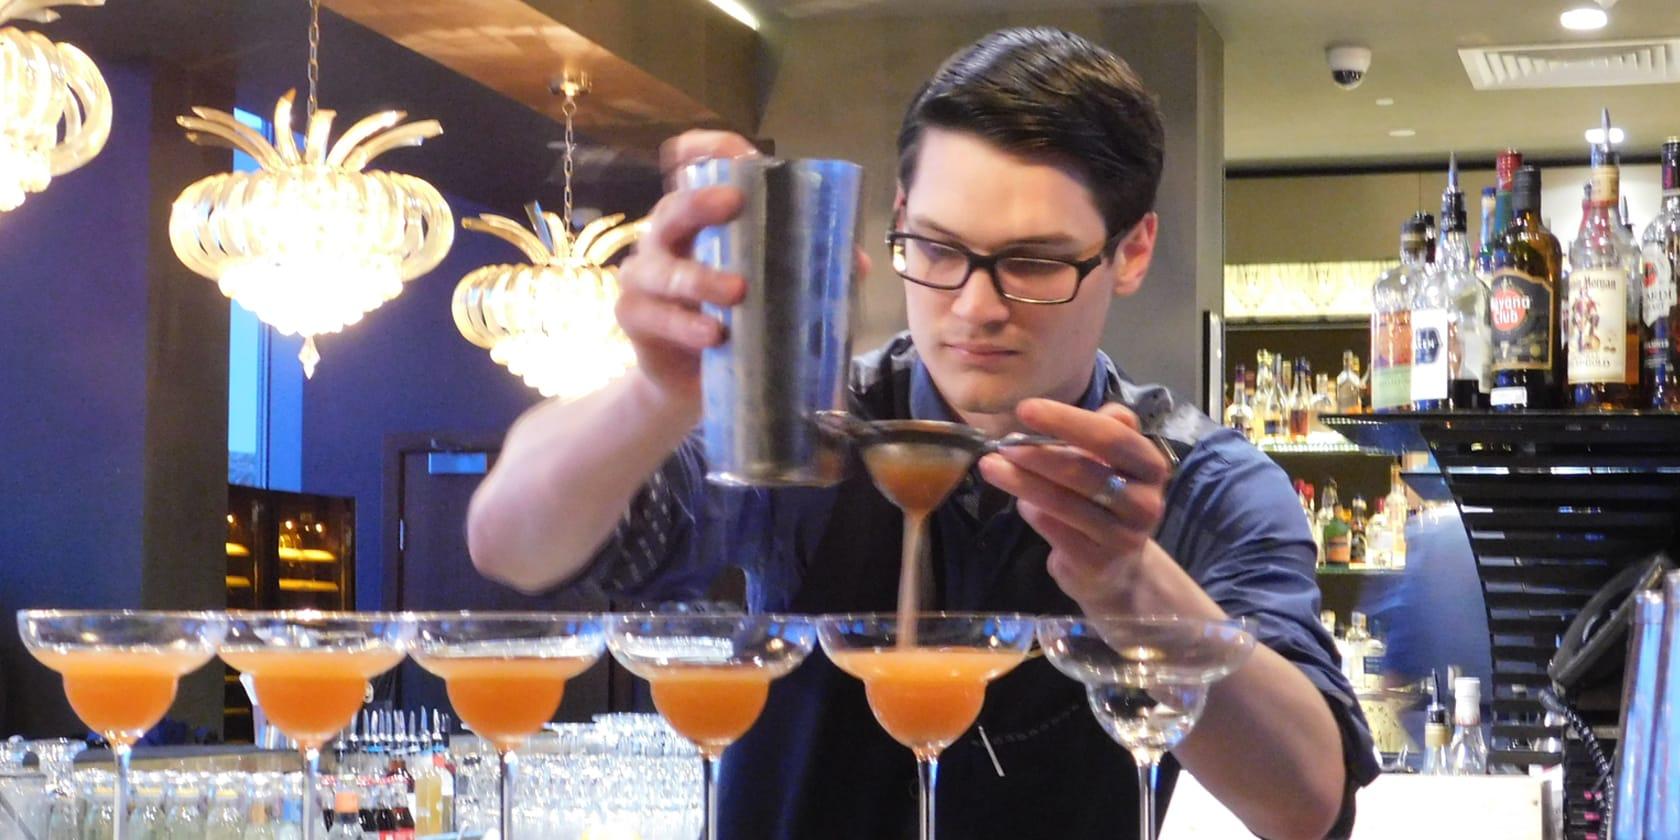 Bartender pouring cocktails.